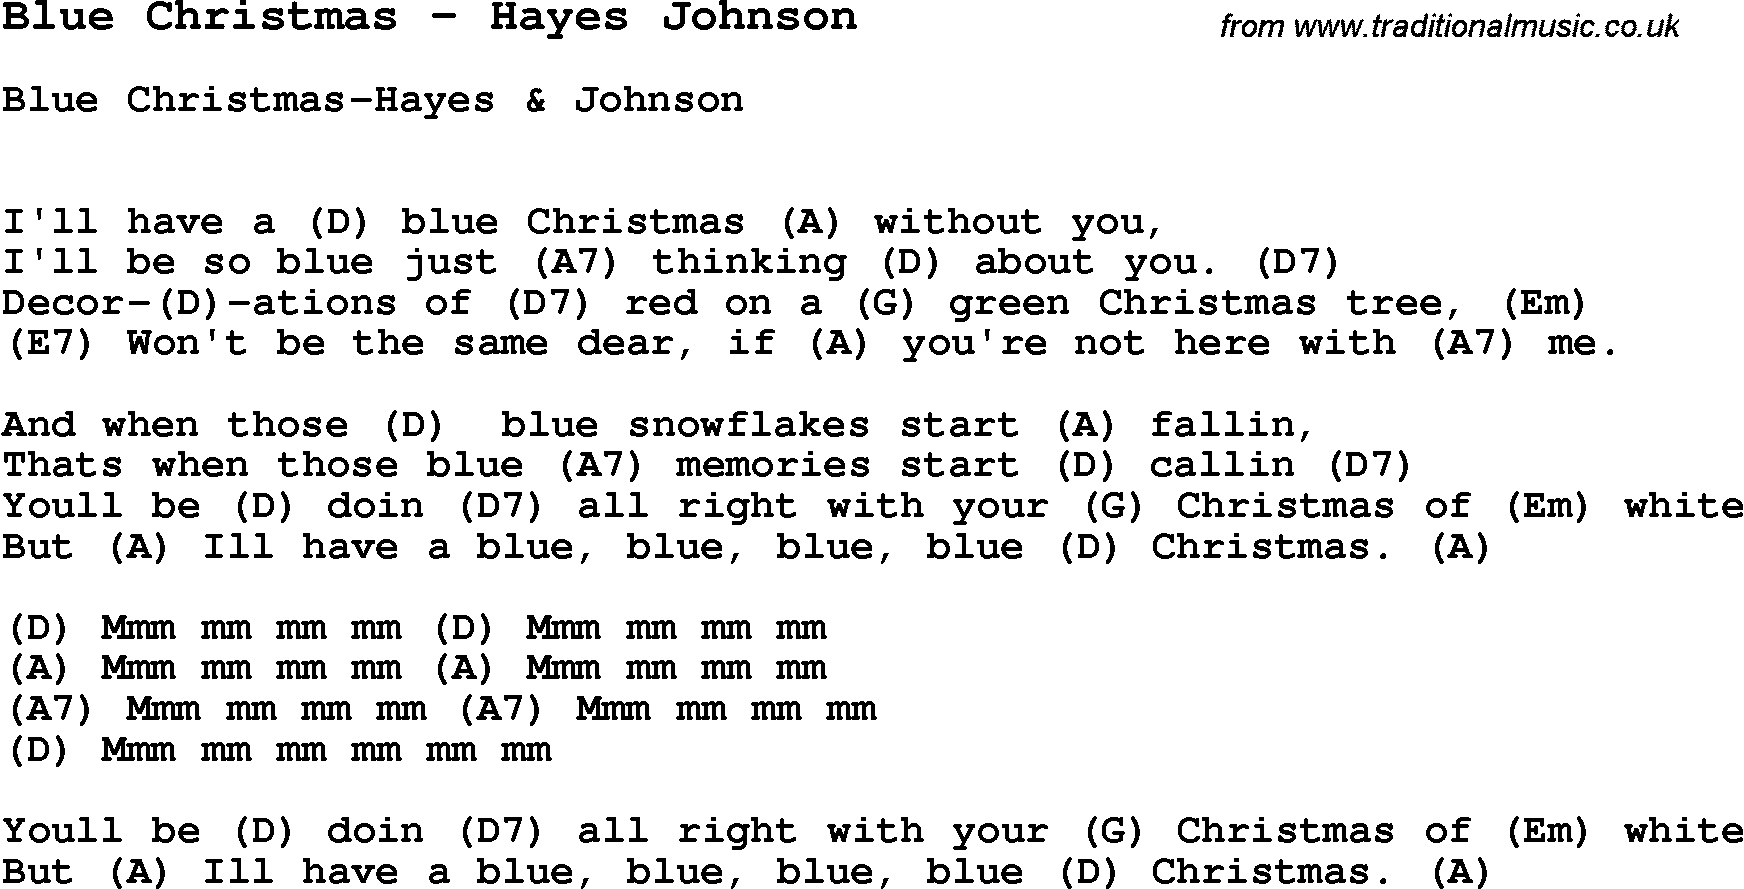 song blue christmas by hayes johnson with lyrics for vocal performance and accompaniment chords for - I Ll Have A Blue Christmas Lyrics